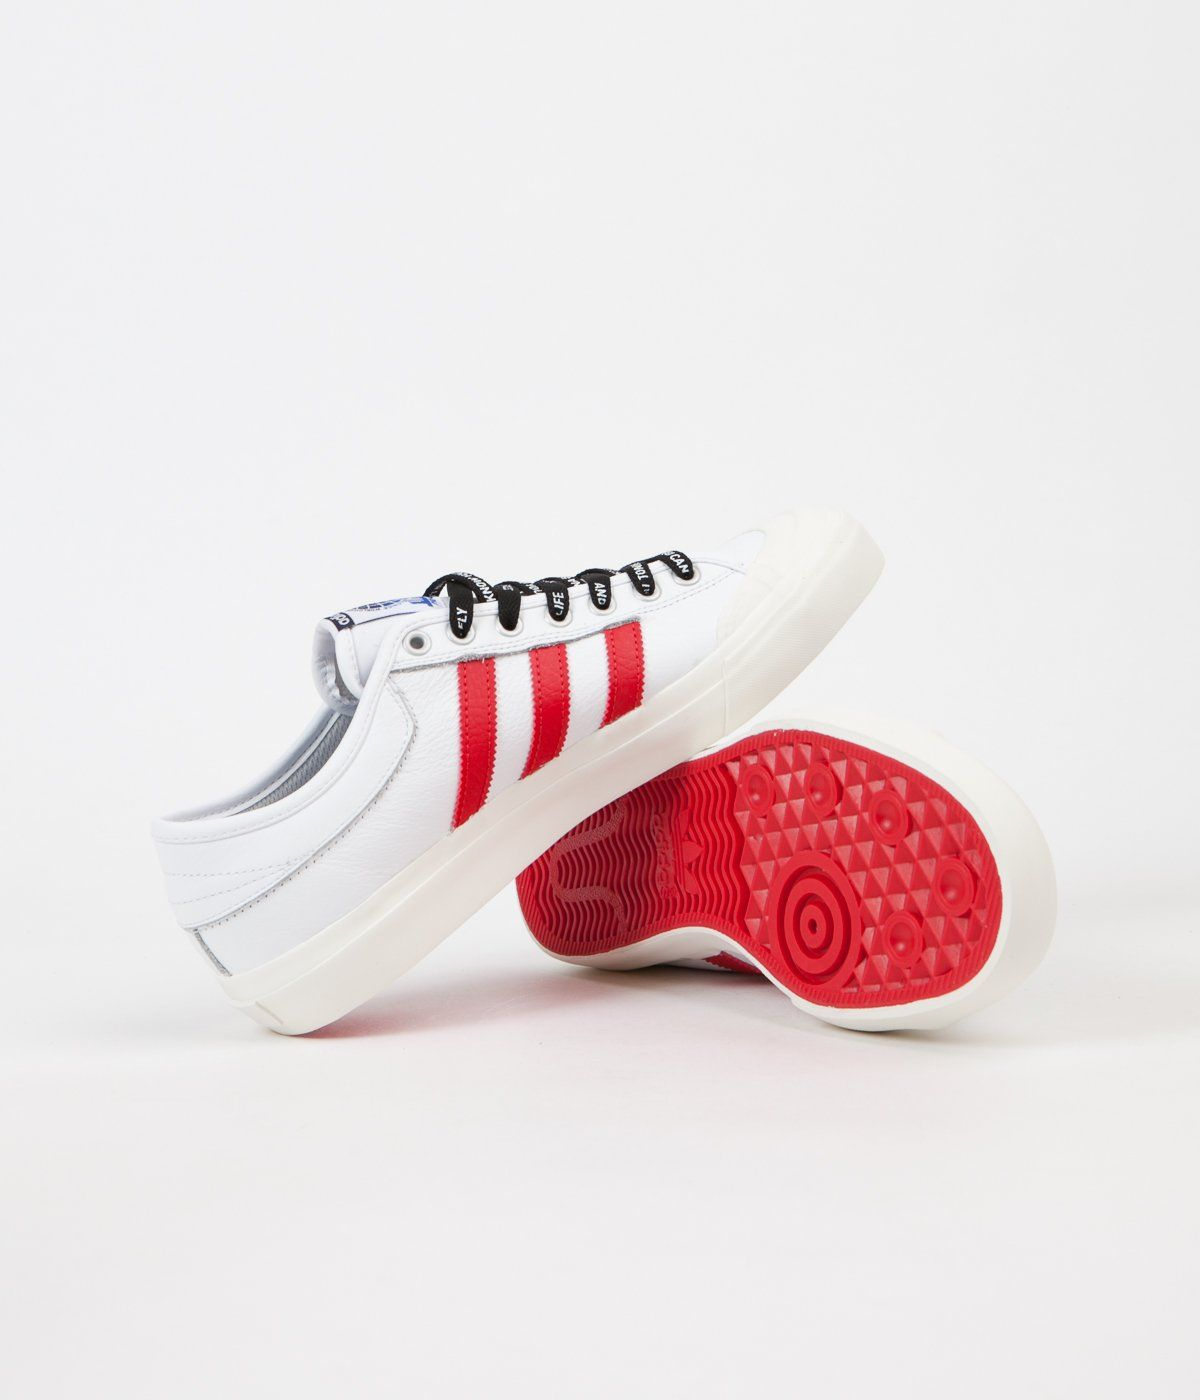 Adidas x Trap Lord Ferg Matchcourt Shoes - White / Scarlet